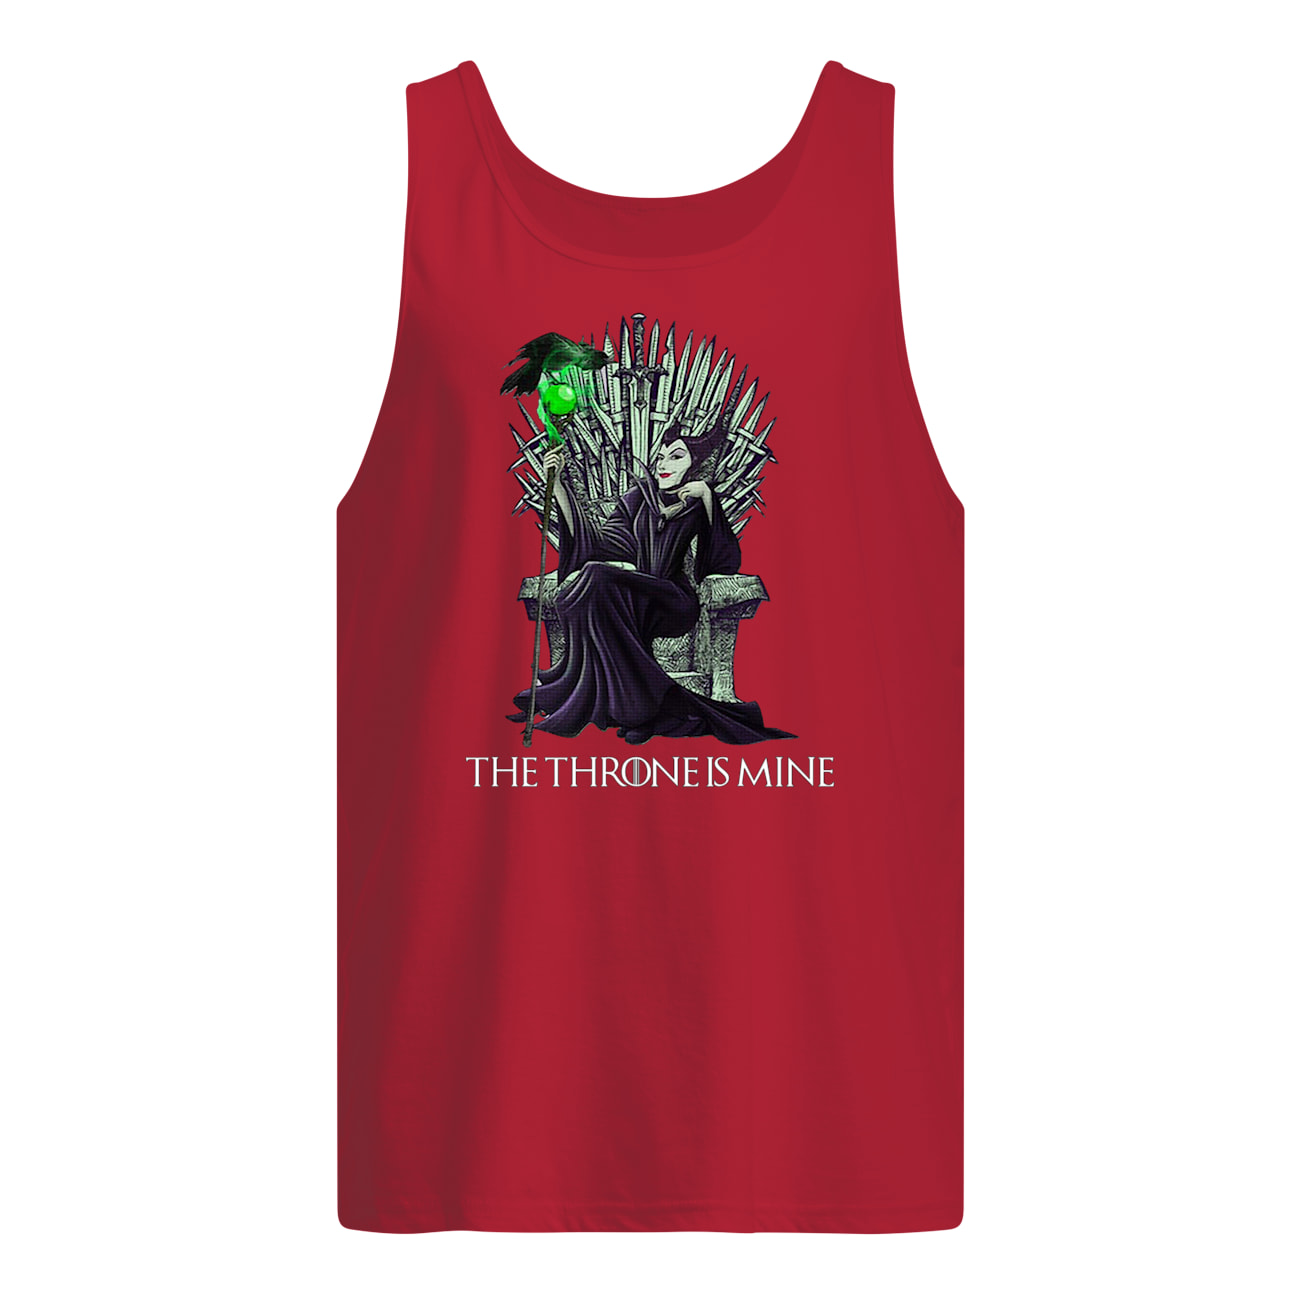 The throne is mine maleficent tank top